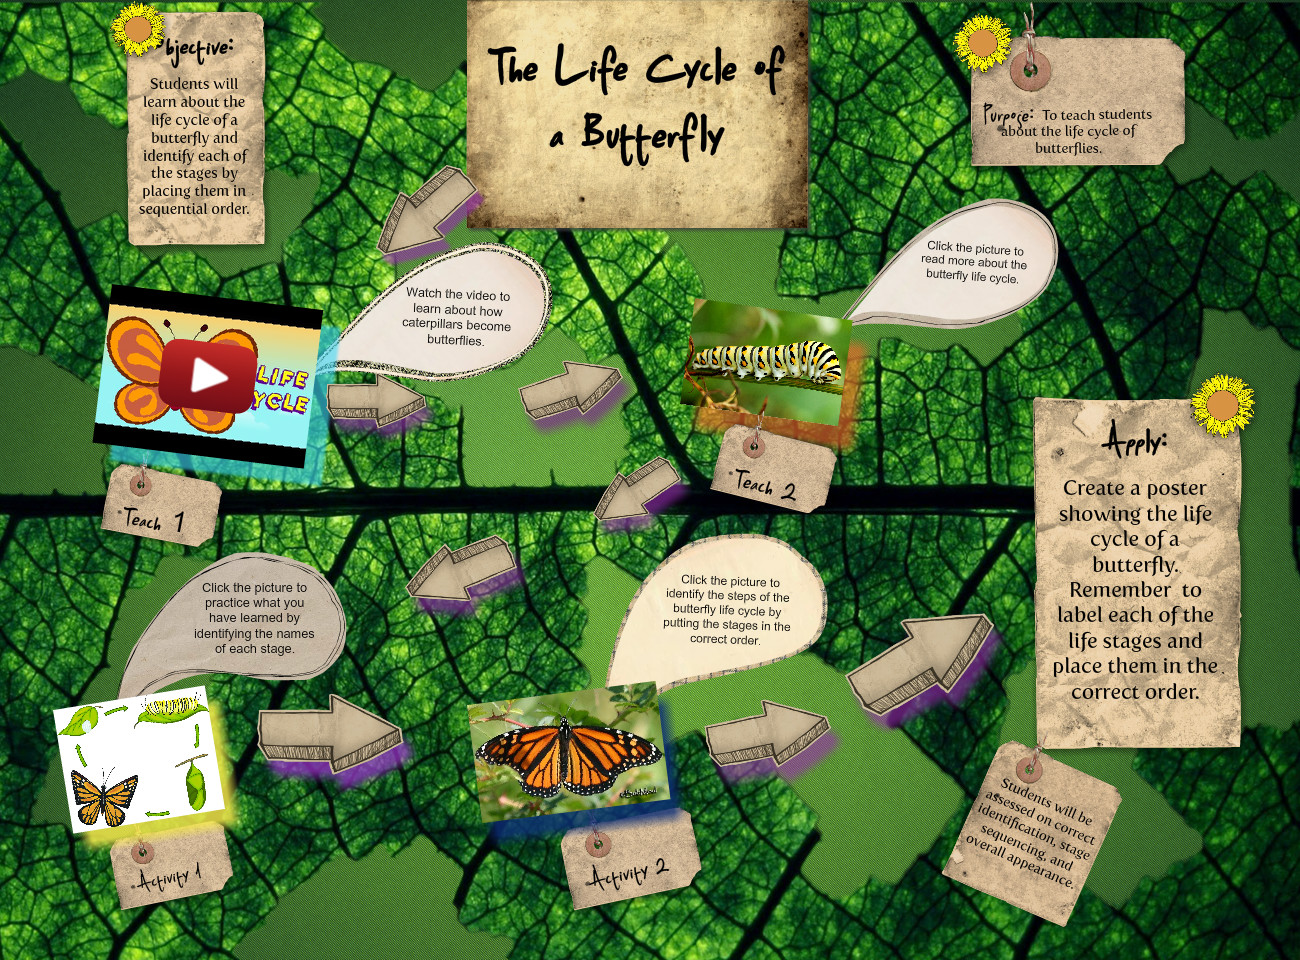 [2015] Megan Polis (Spring 01): Butterfly Life Cycle